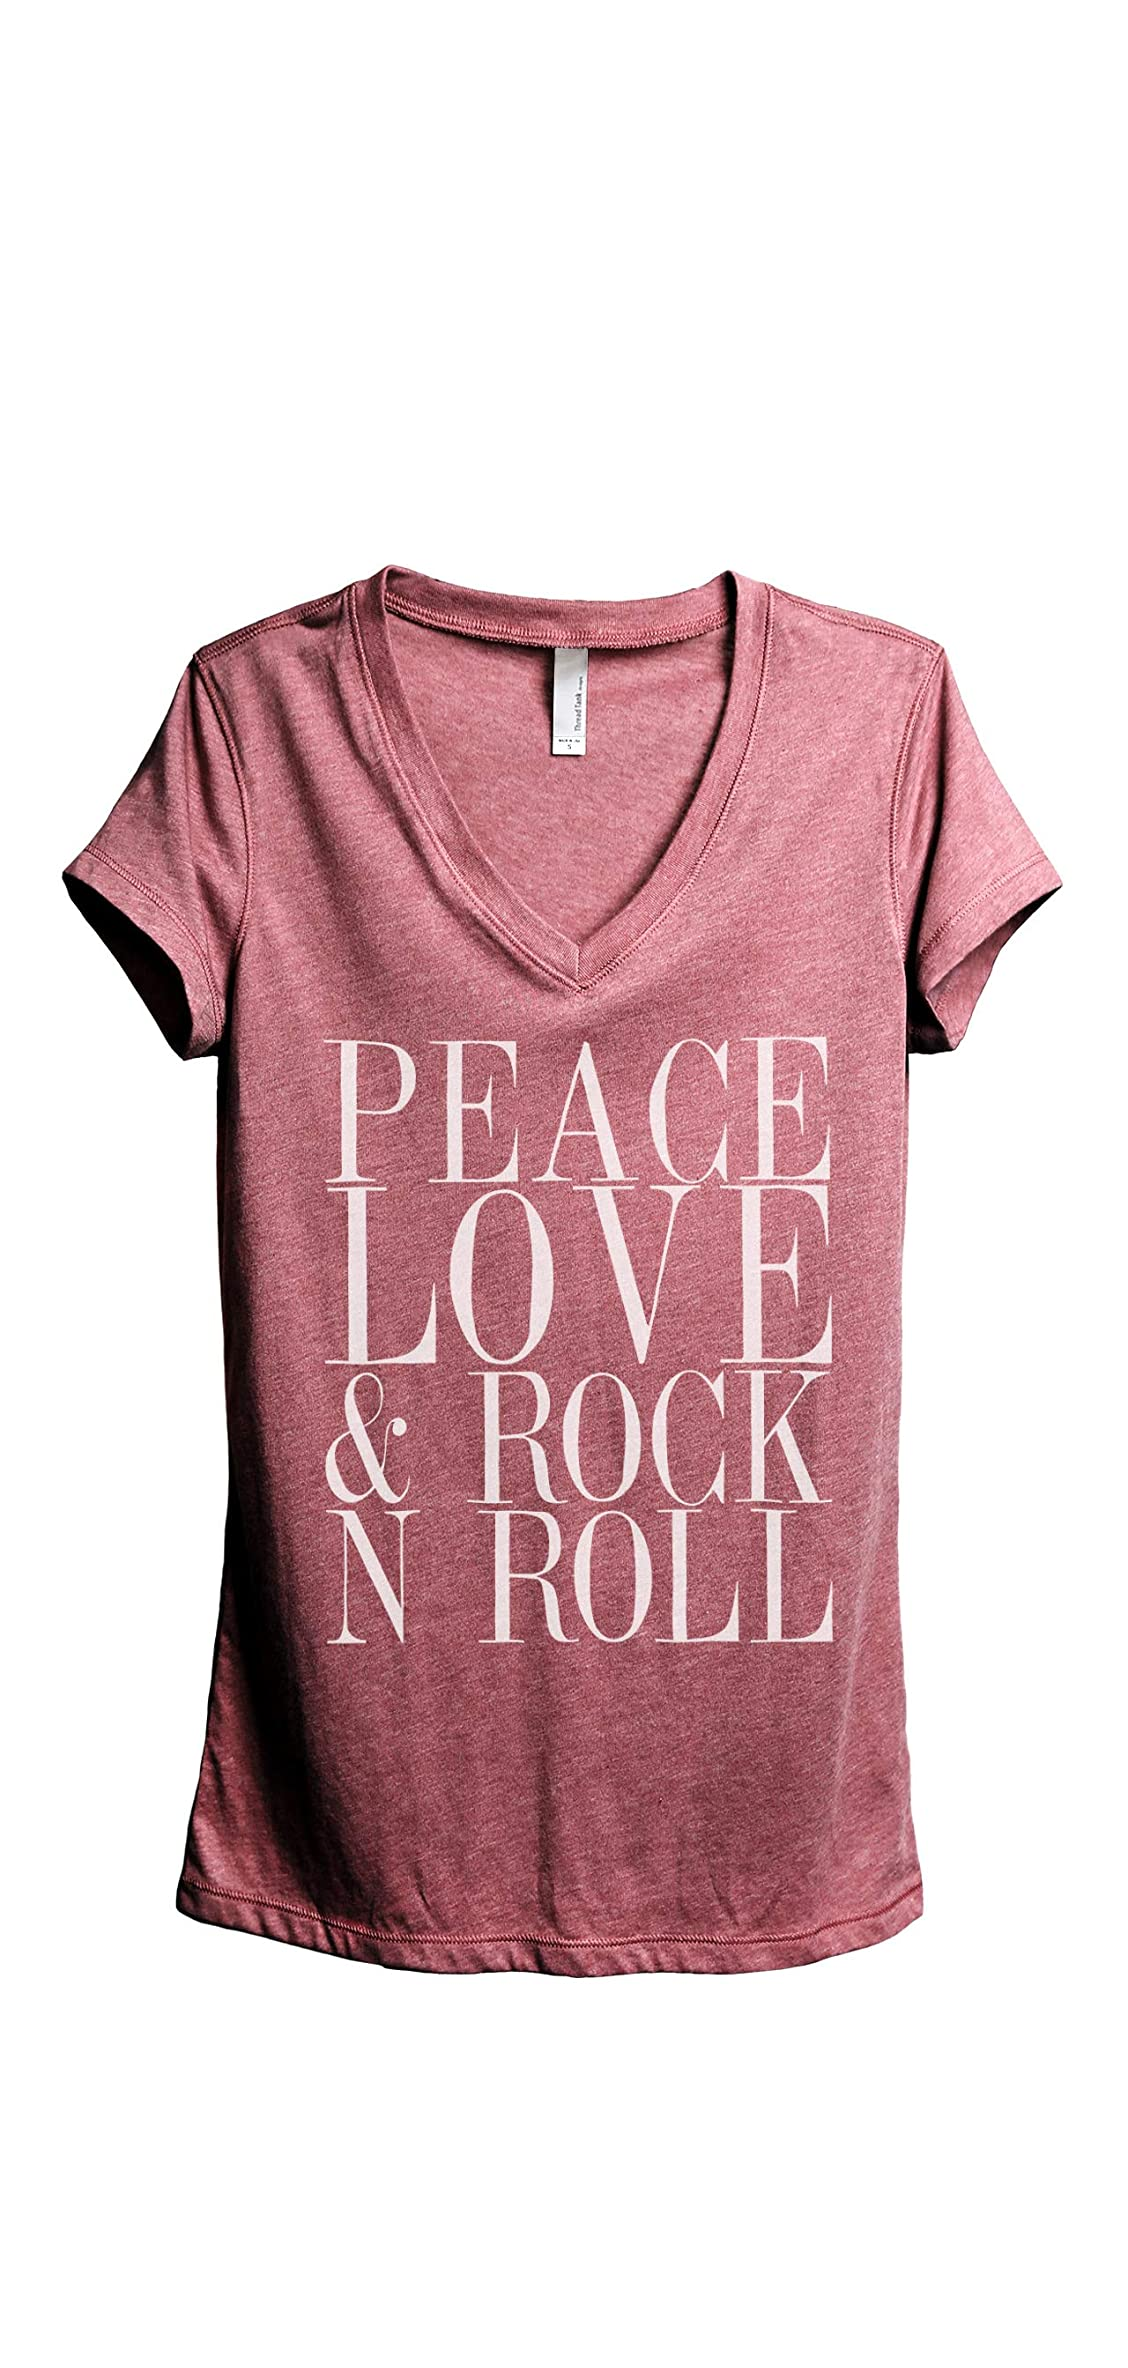 Peace Love And Rock 'n Roll Women's Fashion Relaxed V-neck Tee